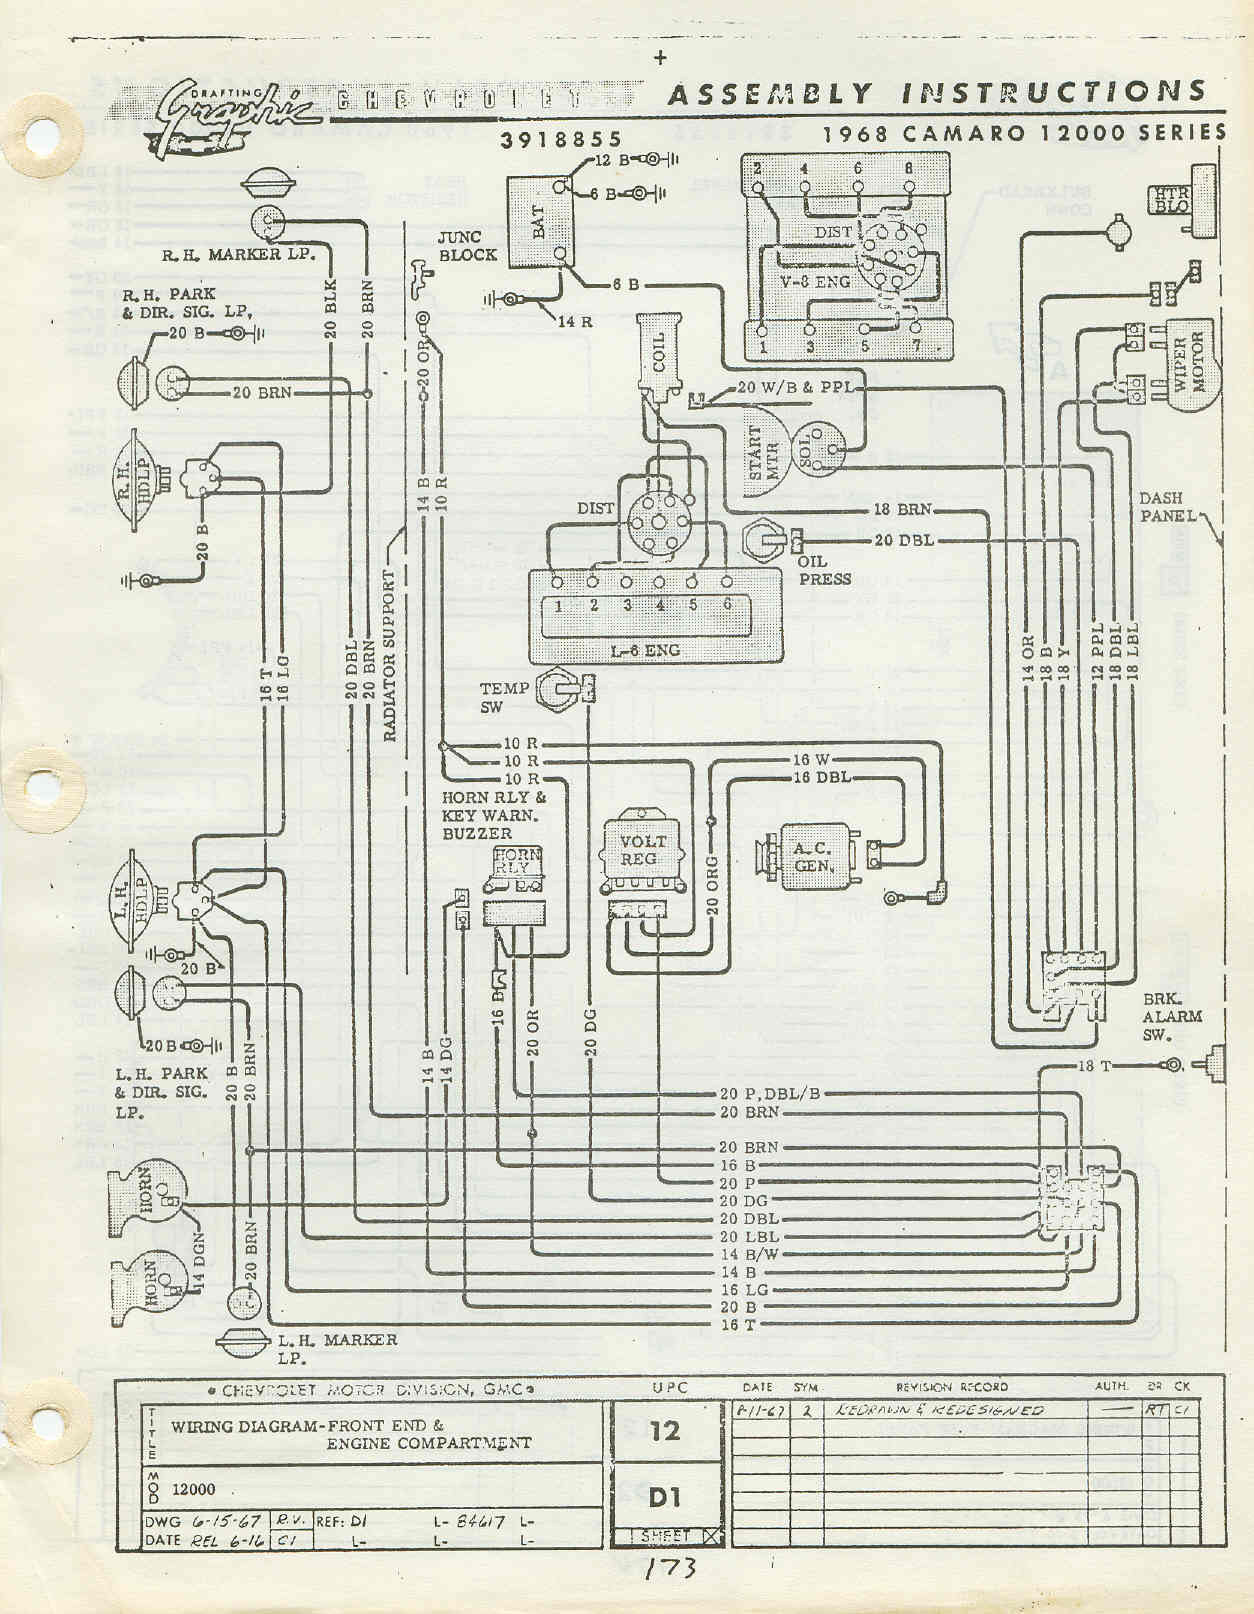 1968 Camaro Ignition Wiring Diagram Diagrams Neutral Safety Harness 79 Firebird Headlight Get Free Image Switch 68